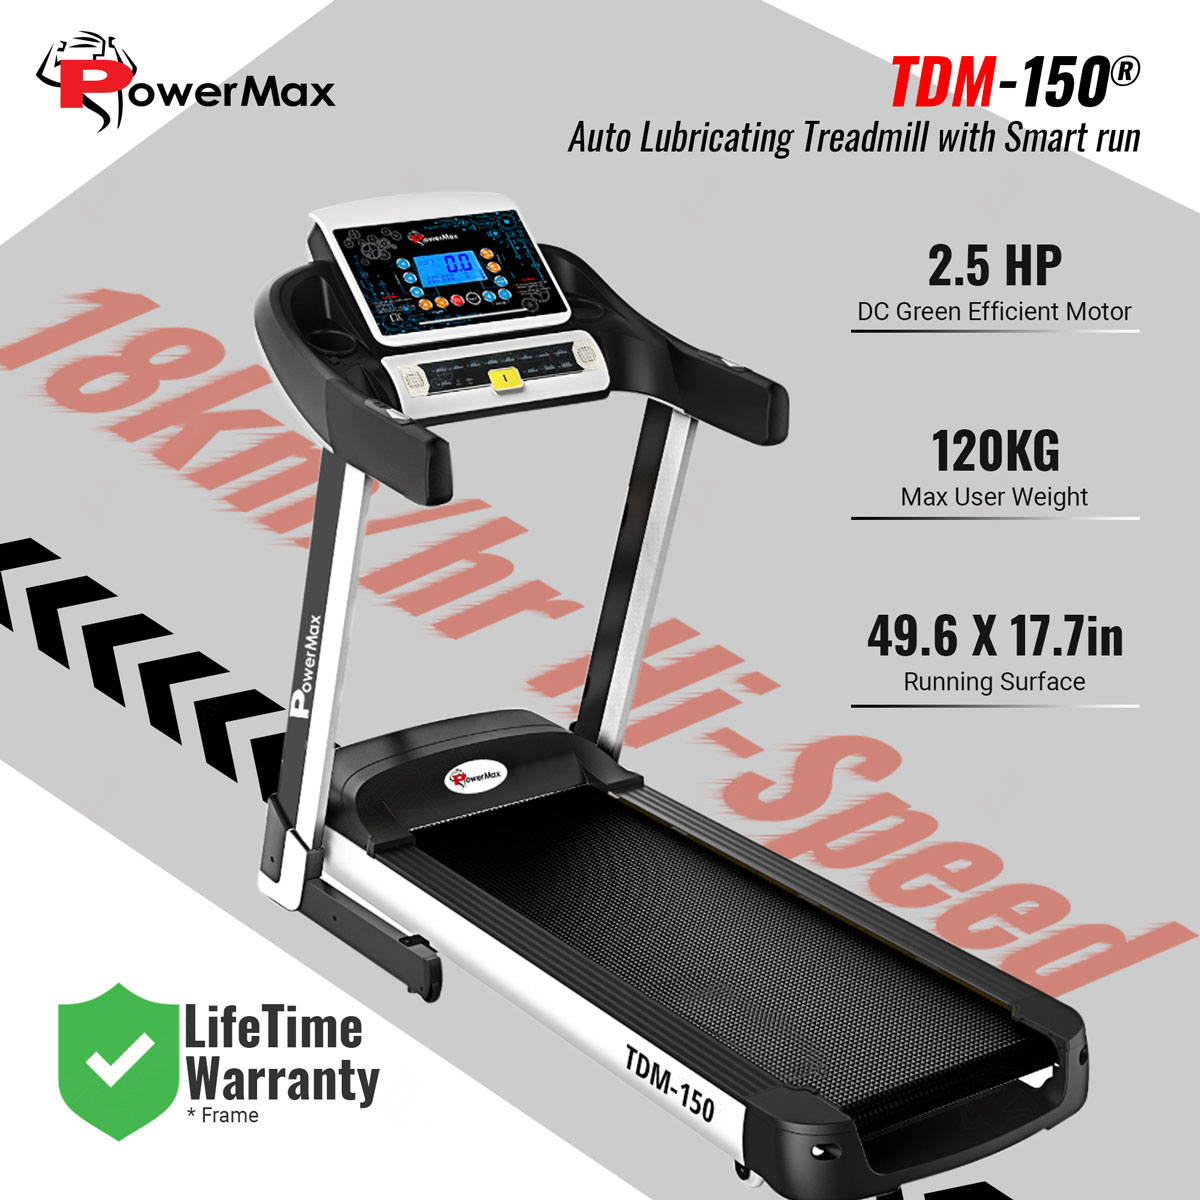 TDM-150® Auto Lubricating Treadmill with Smart Run Function